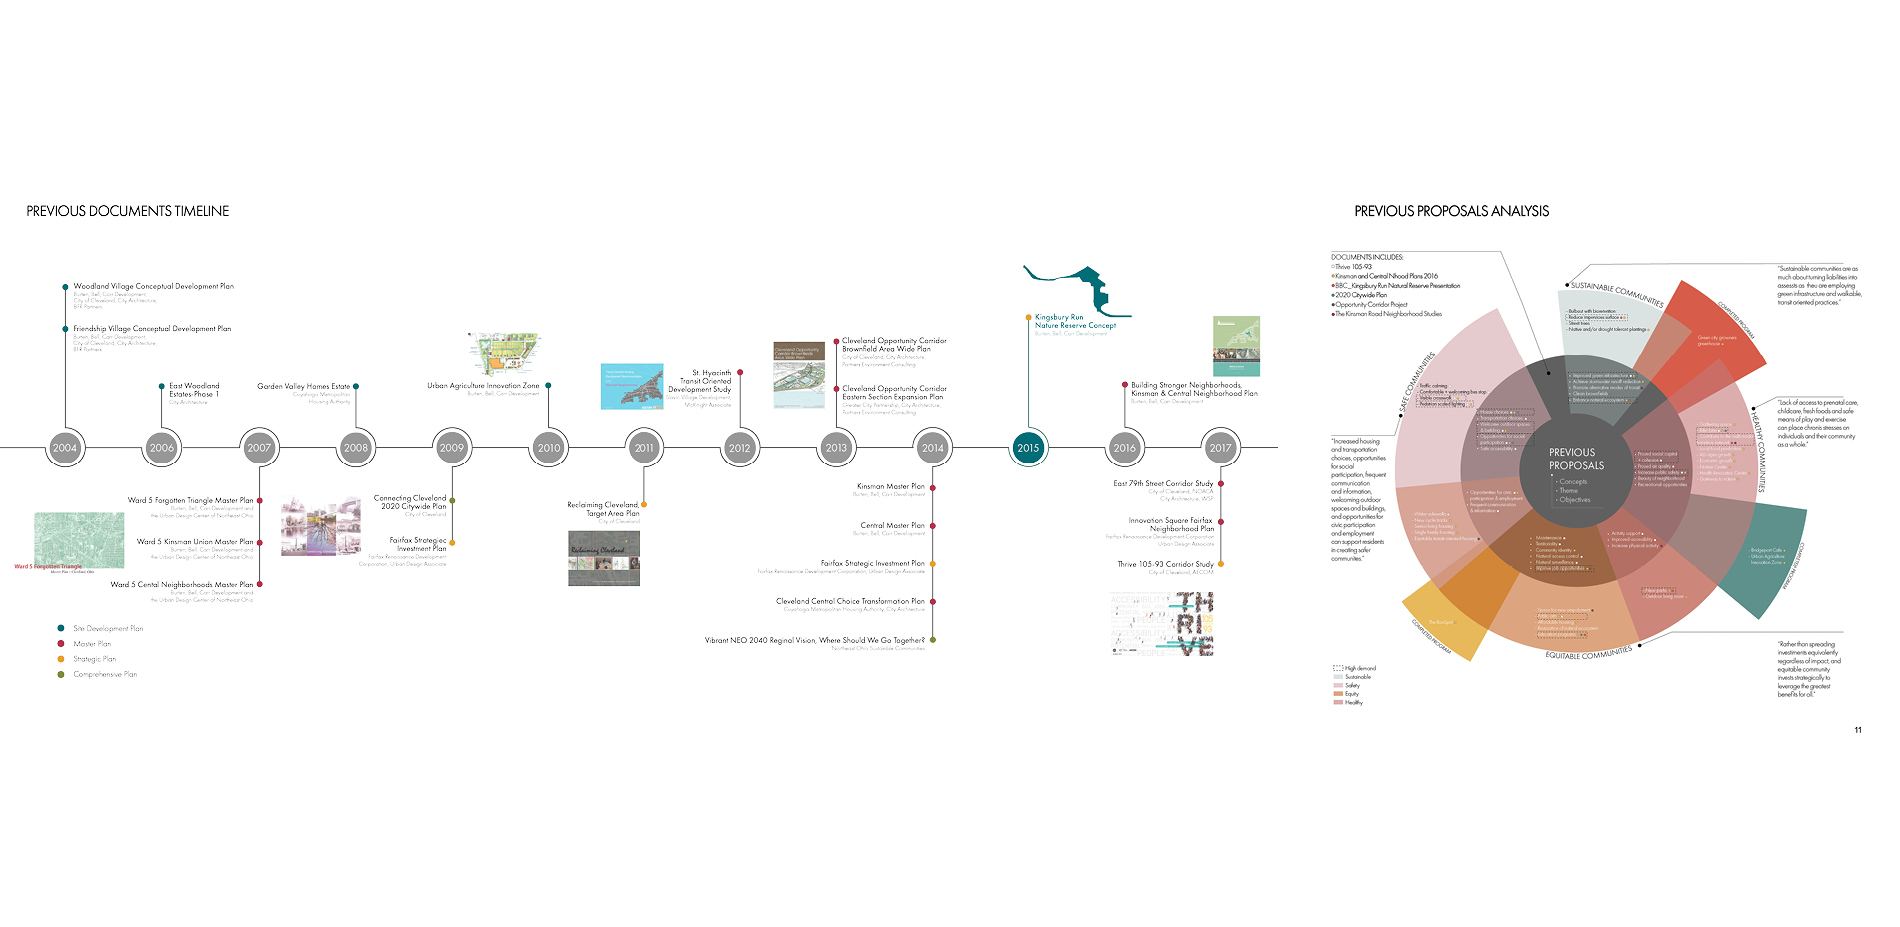 Previous Documents Timeline & Previous Proposals Analysis